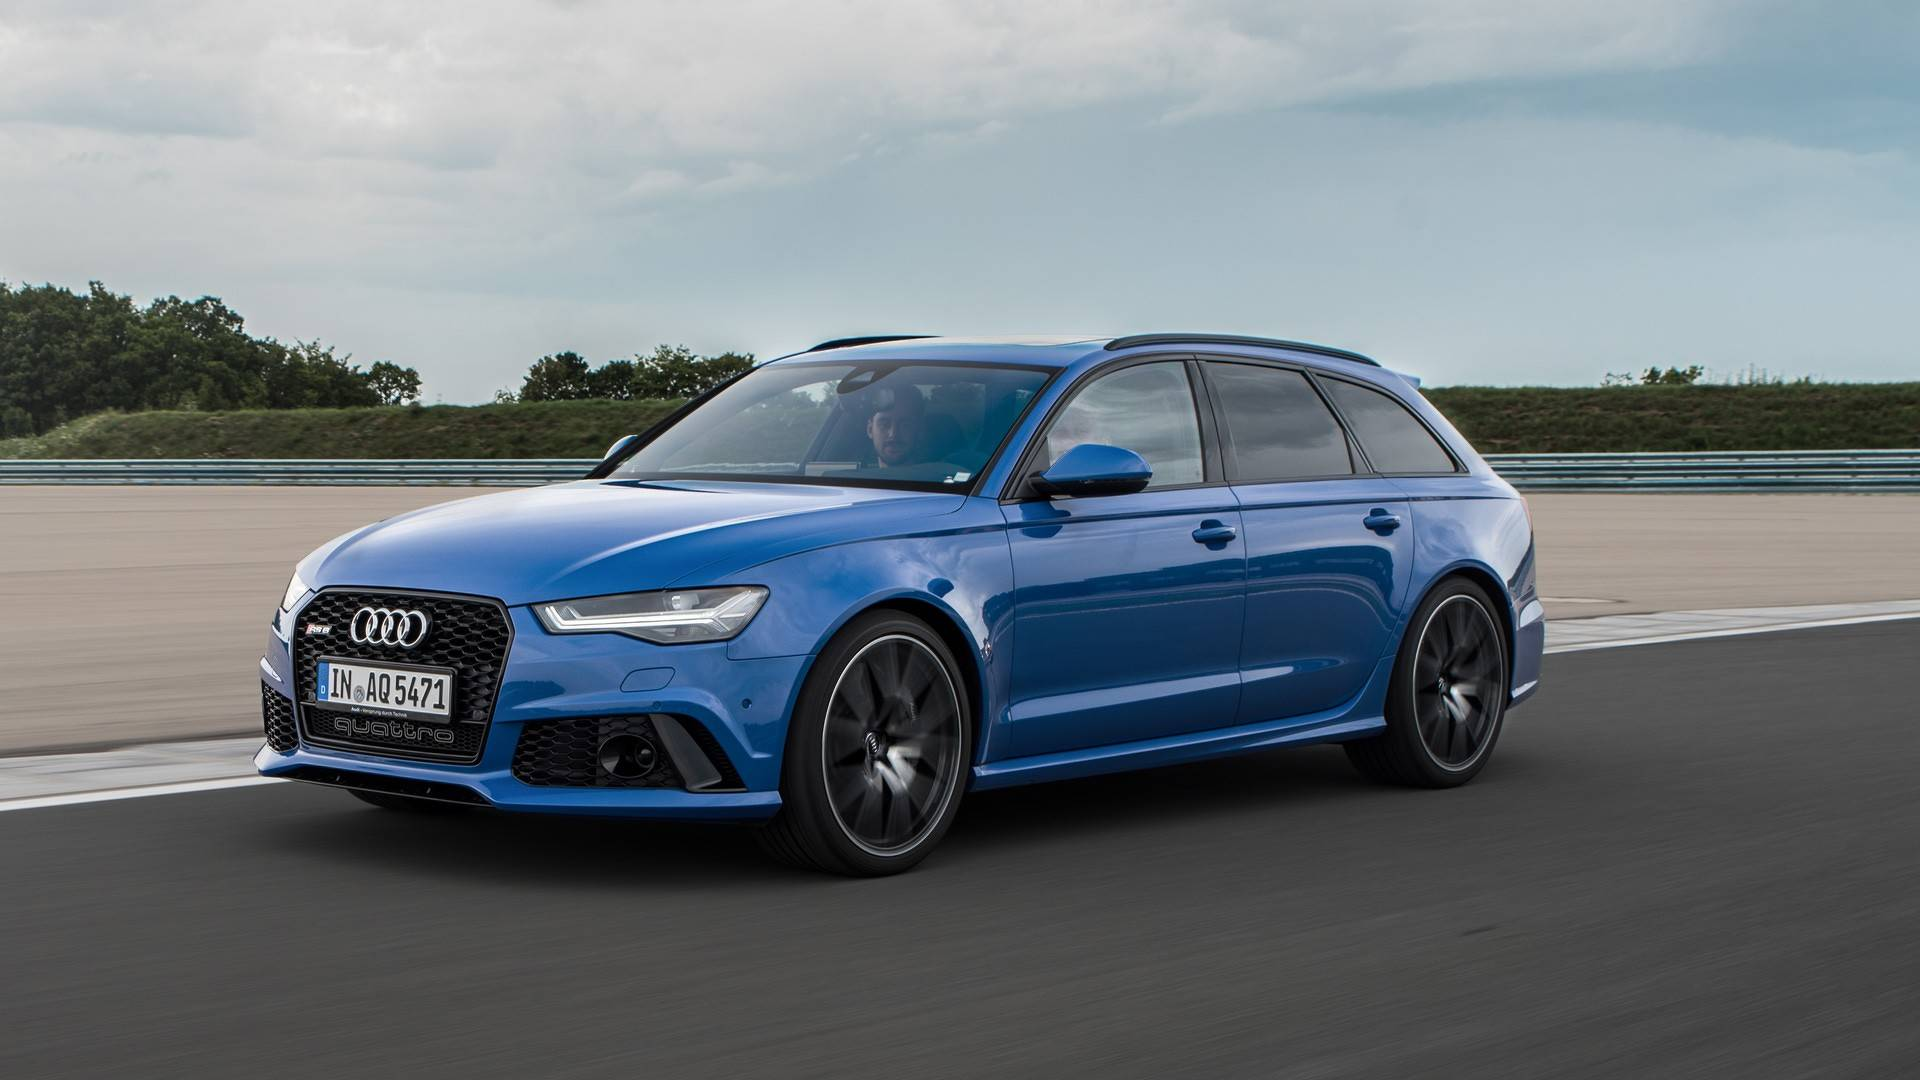 Audi Rs6 Avant Performance Nogaro Edition Combines 705